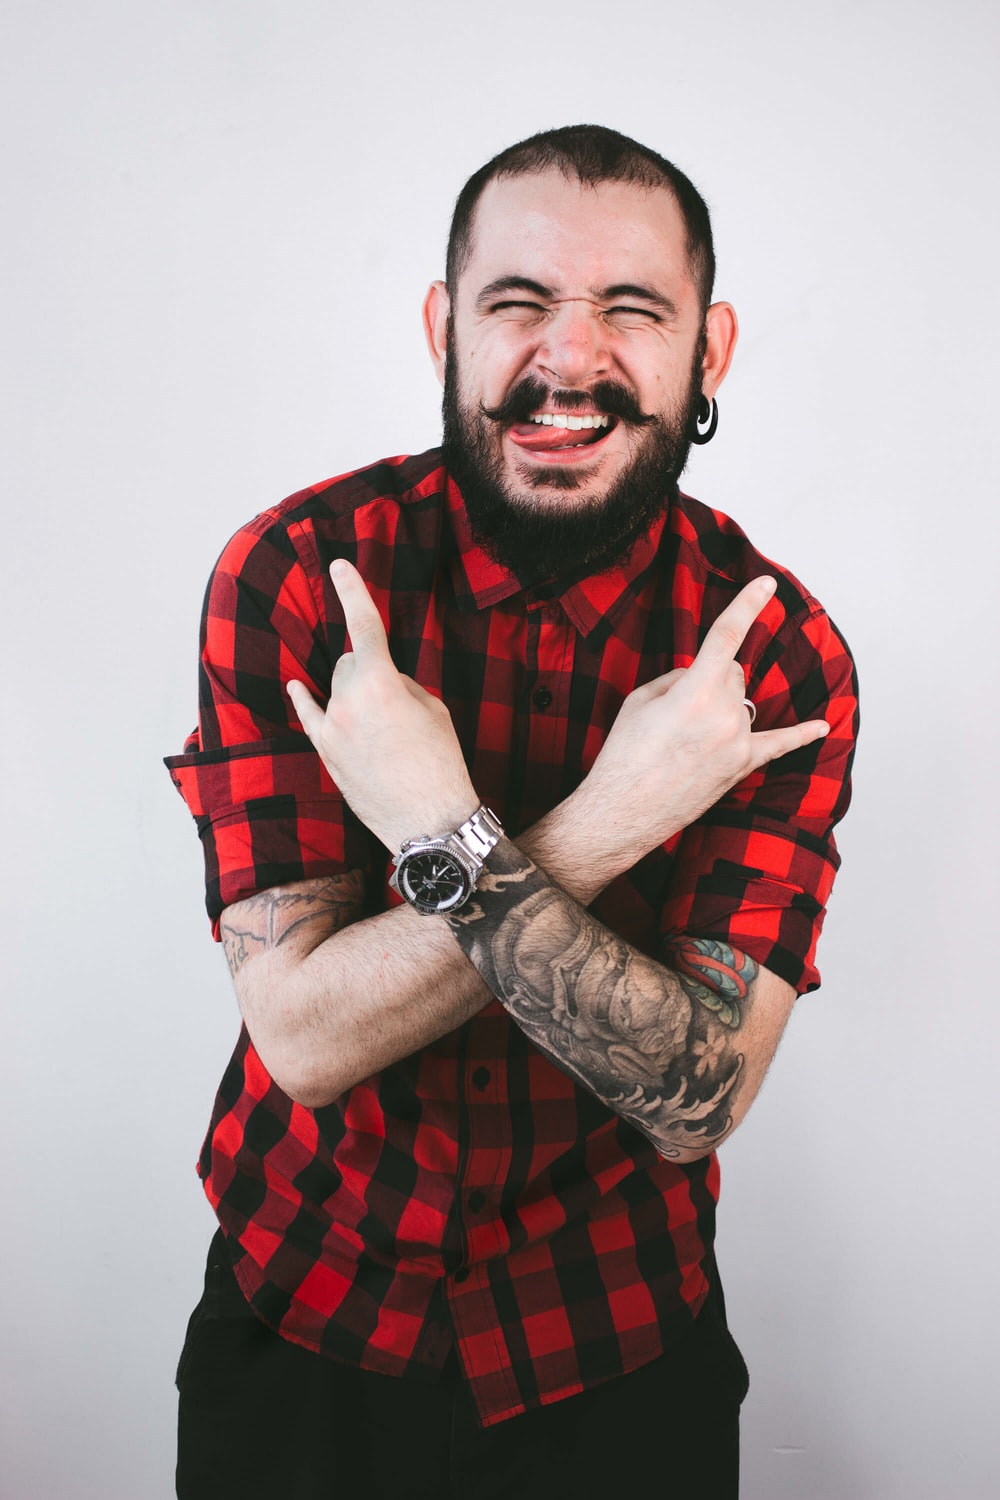 man wearing red and black checked button-up shirt doing rock hand sign